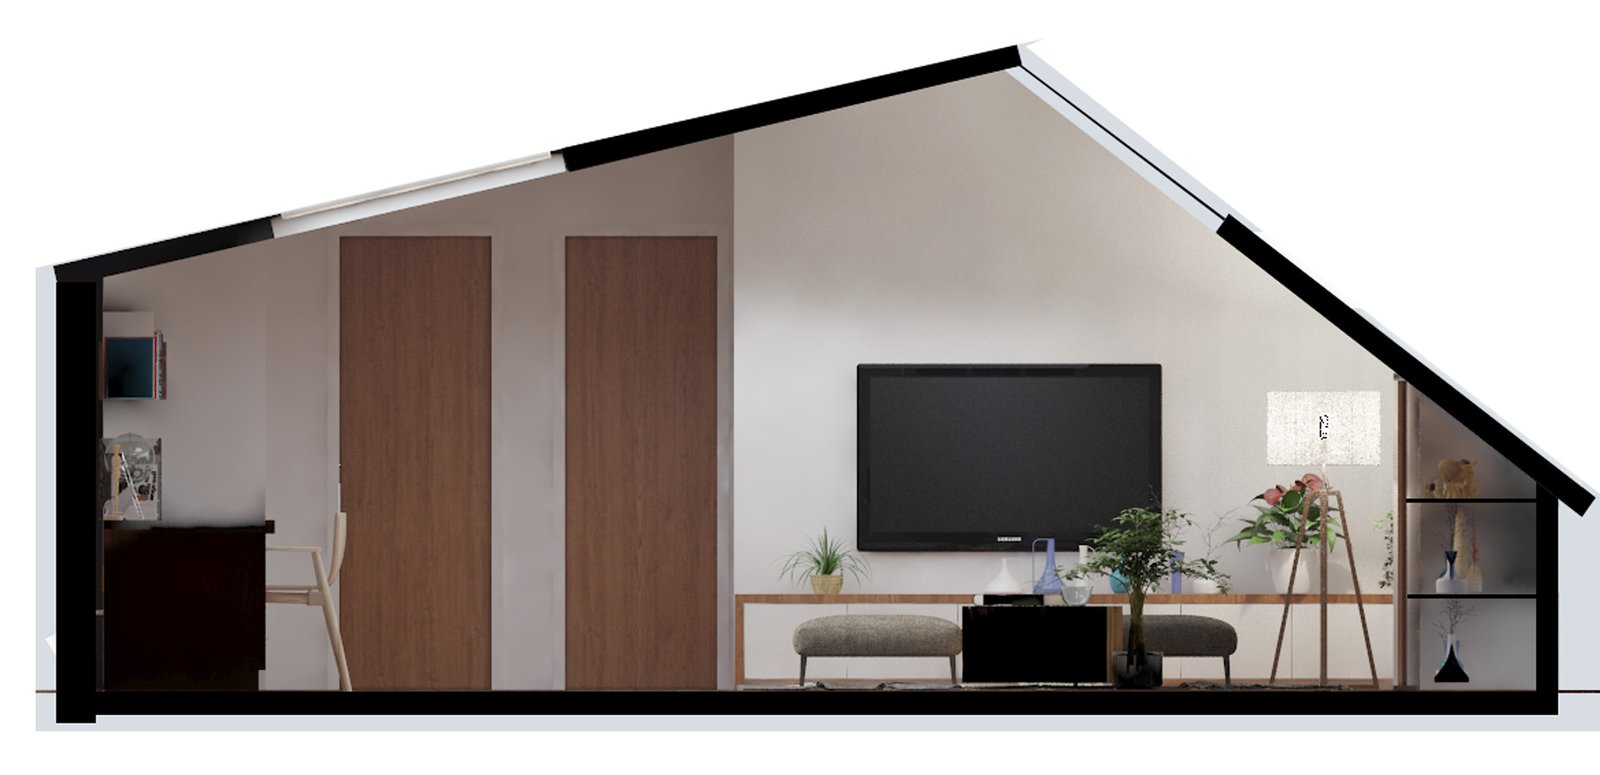 Section view, looking from the couch area  Inspired Flexible Attic Space